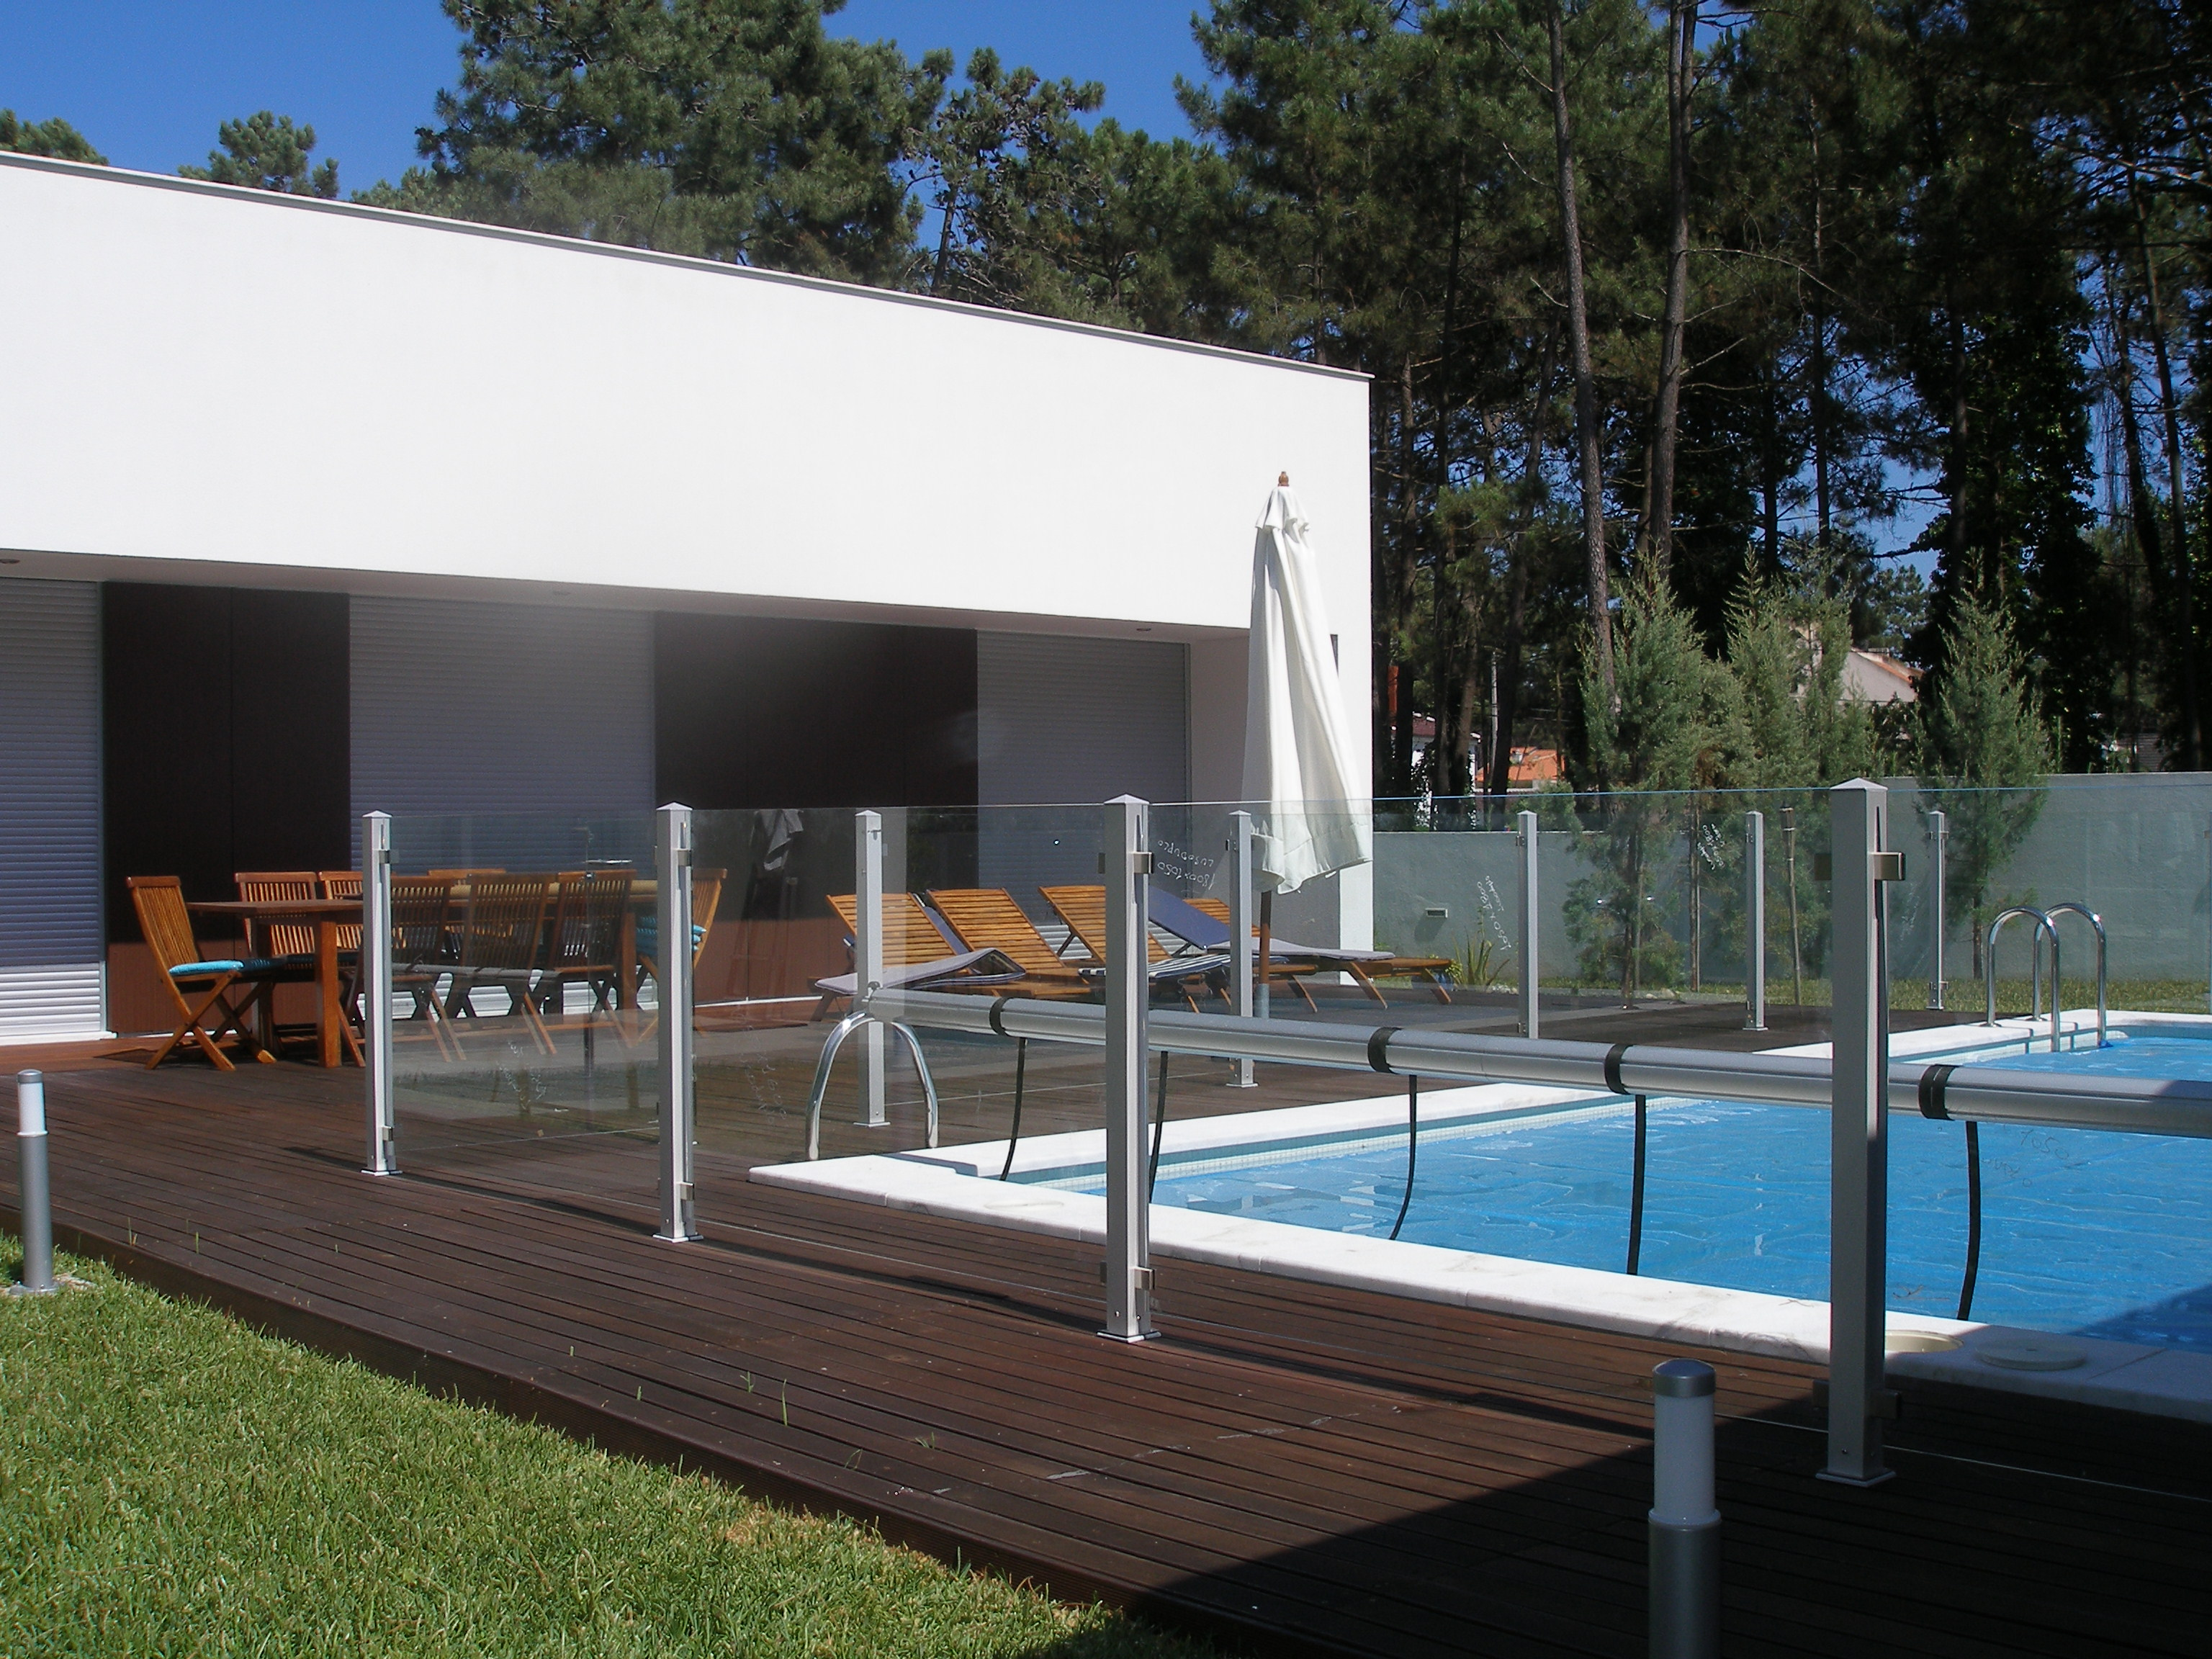 Valla piscina segunda mano top valla de pvc picket fence for Piscinas segunda mano